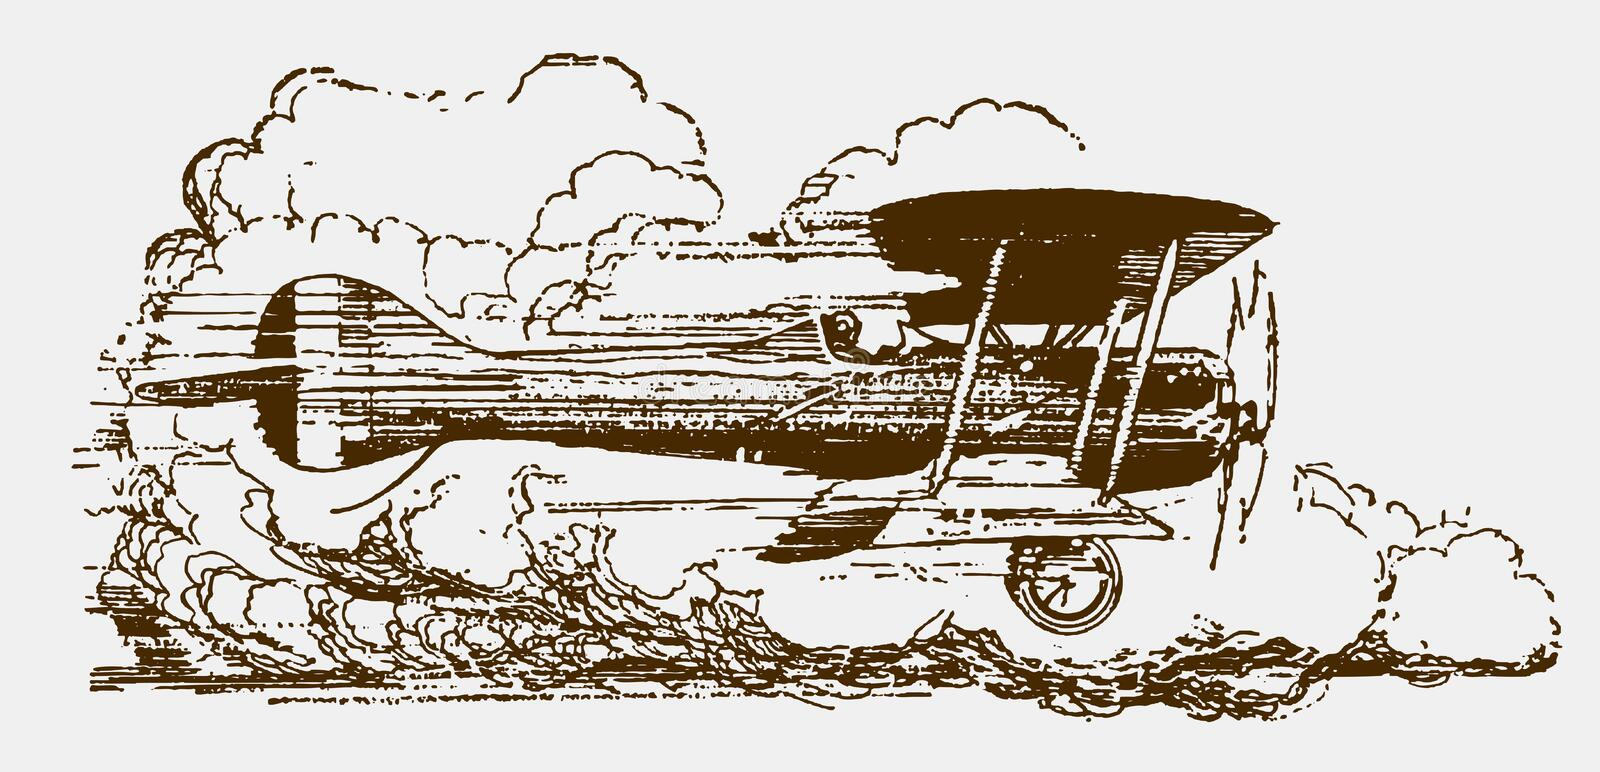 Historic biplane in side view flying at high speed in front of large cumulus clouds. Illustration after a lithography from the early 20th century royalty free illustration